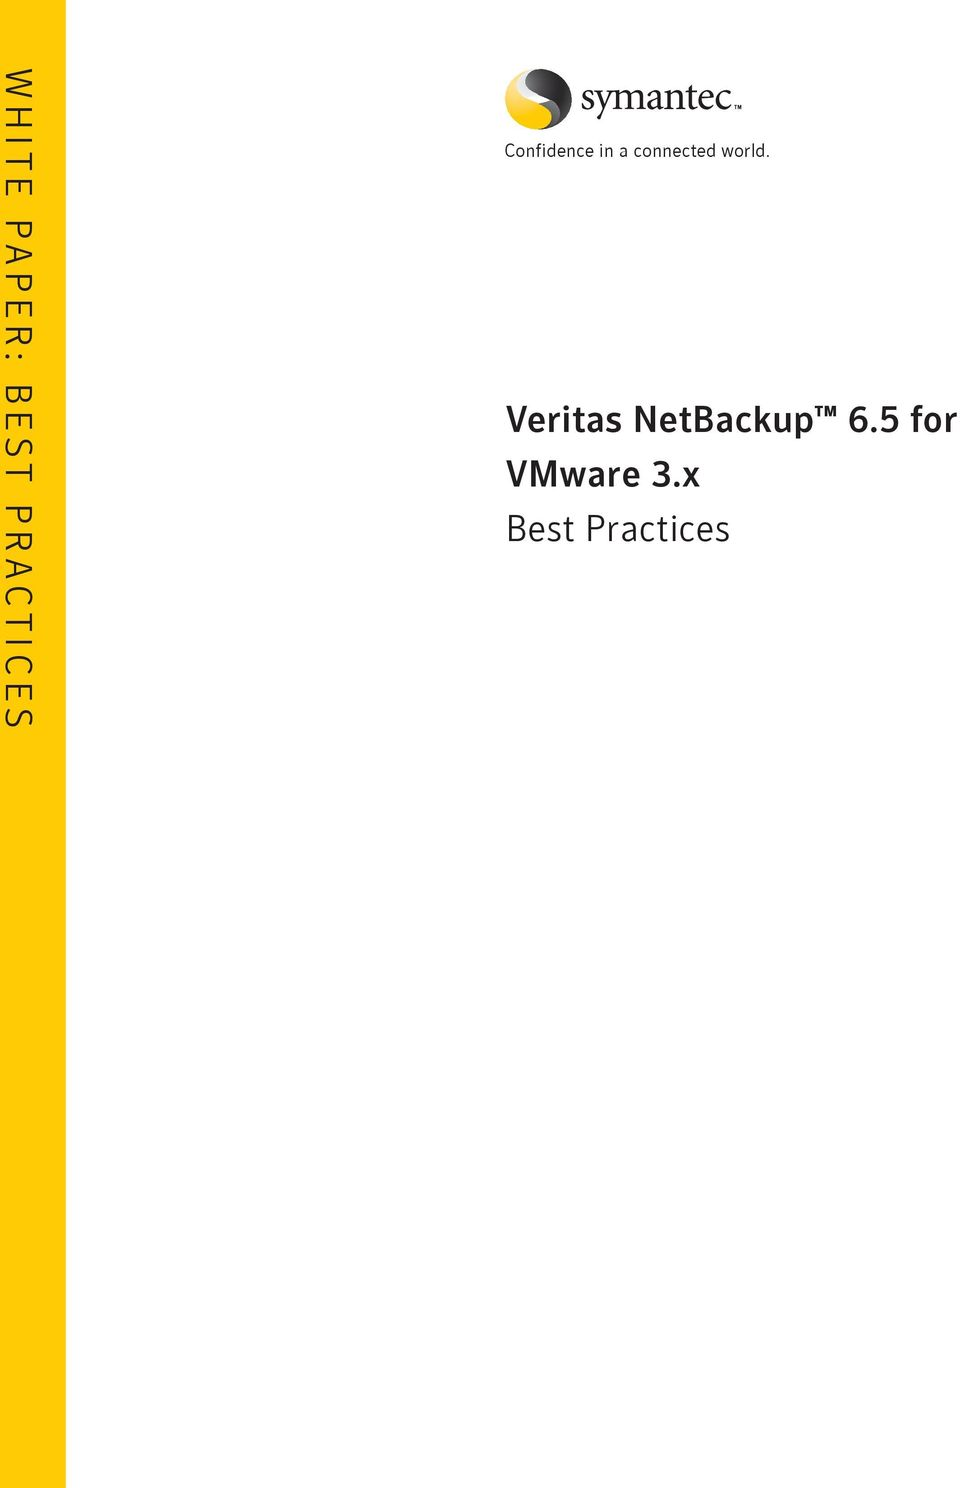 world. Veritas NetBackup 6.